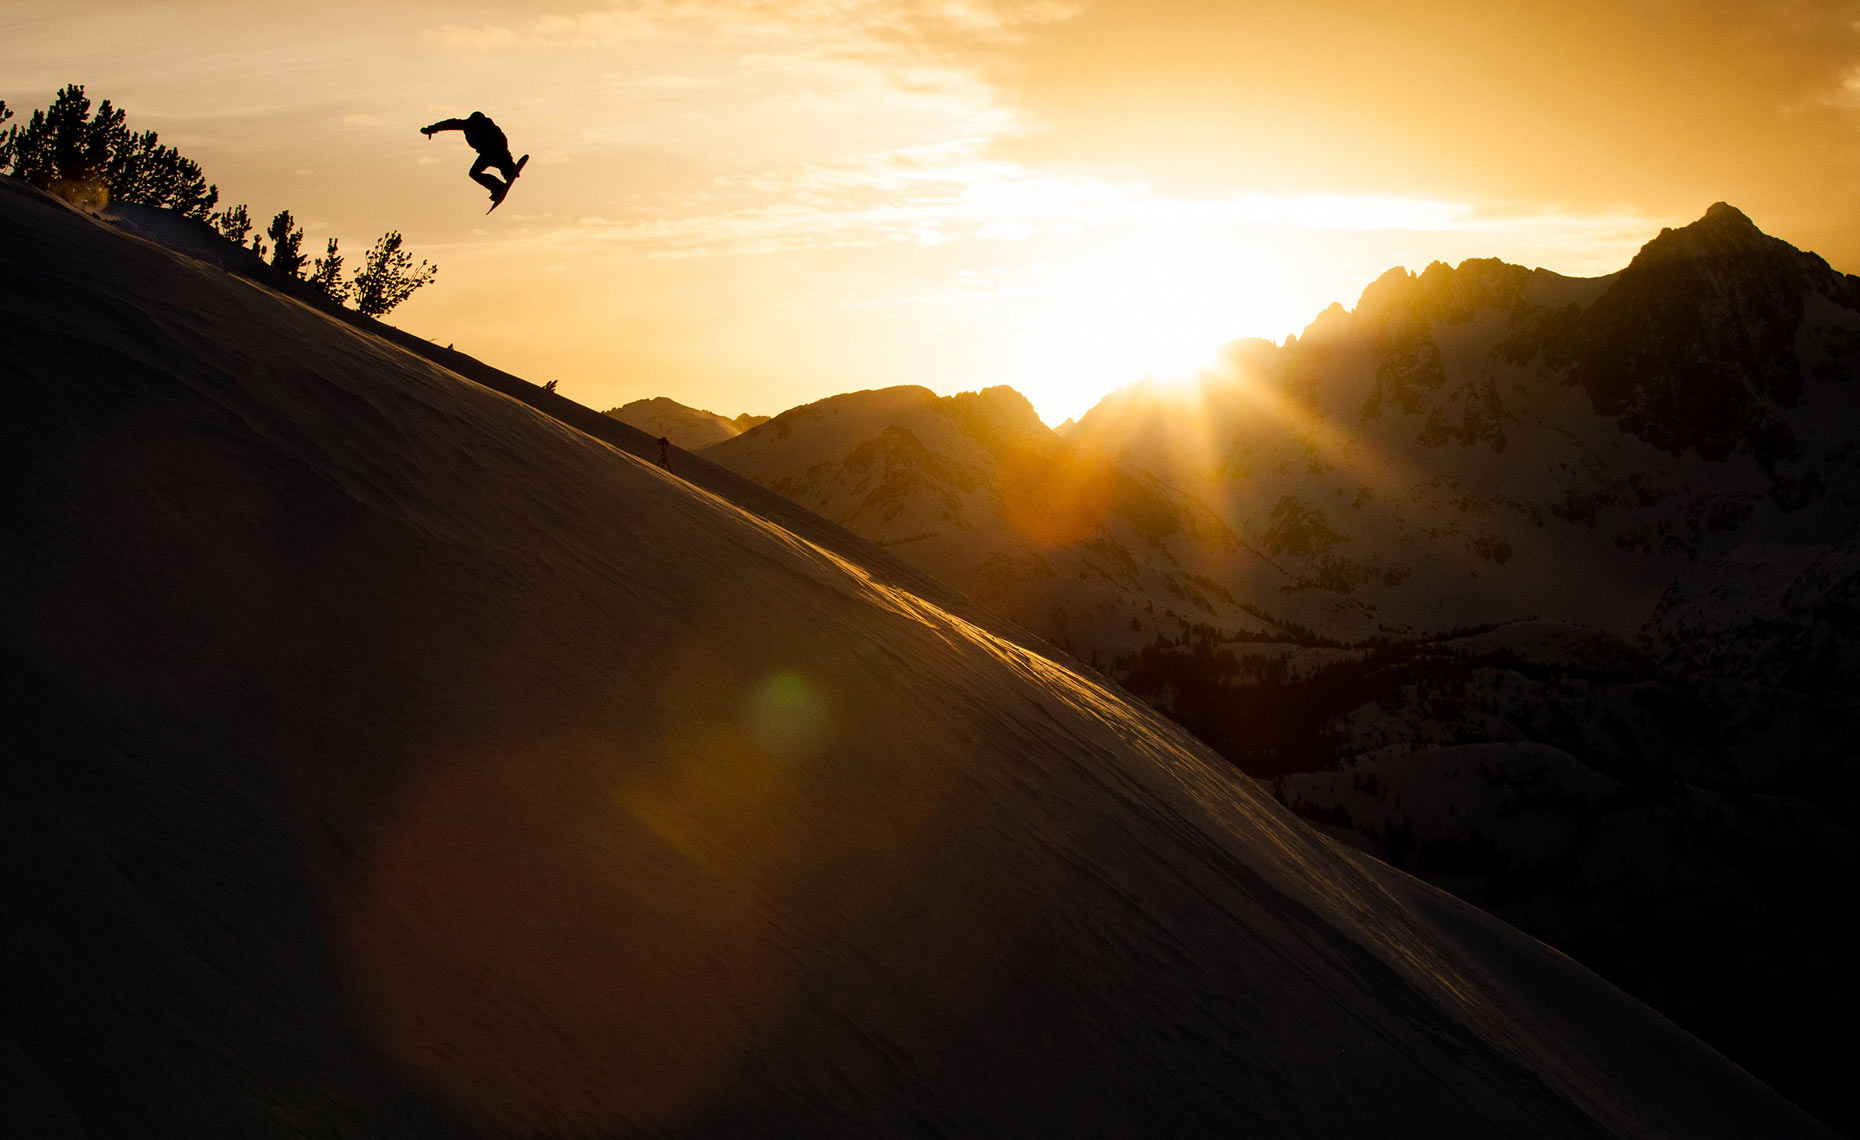 Phantom-Lifts-June-To-Mammoth-TWSNOW-Chris-Wellhausen-20